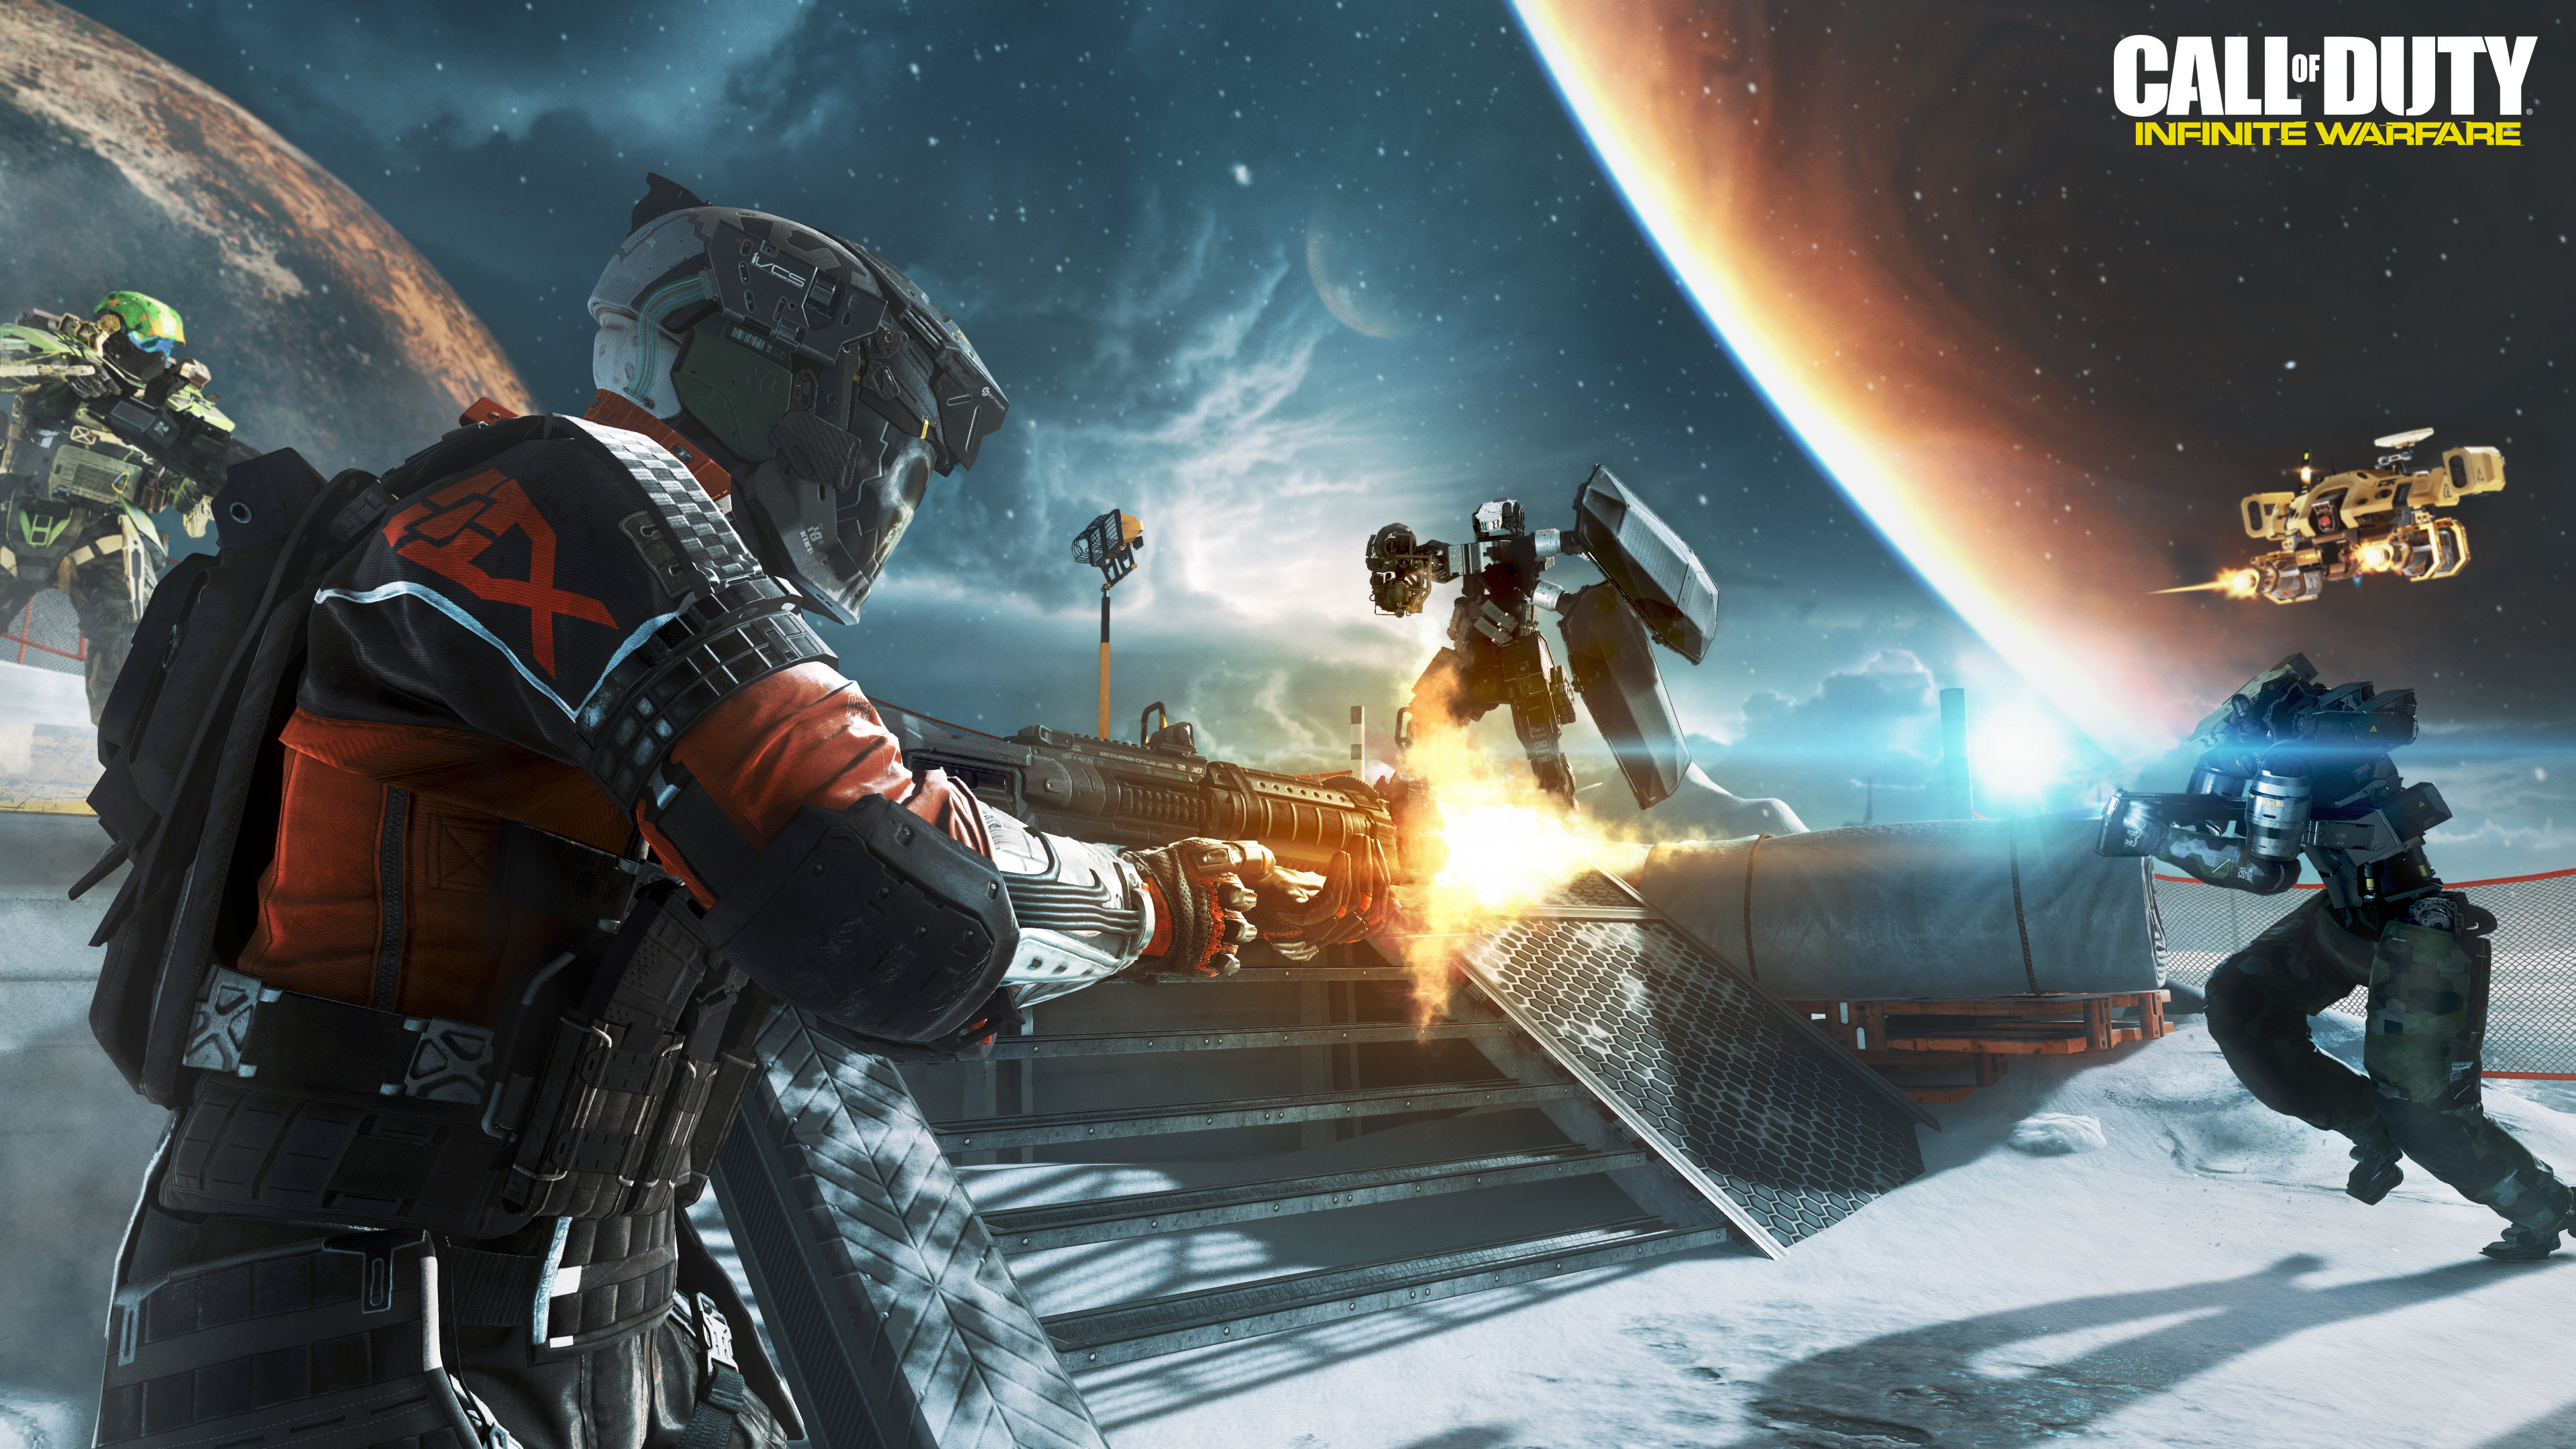 call of duty: infinite warfare wallpapers, pictures, images